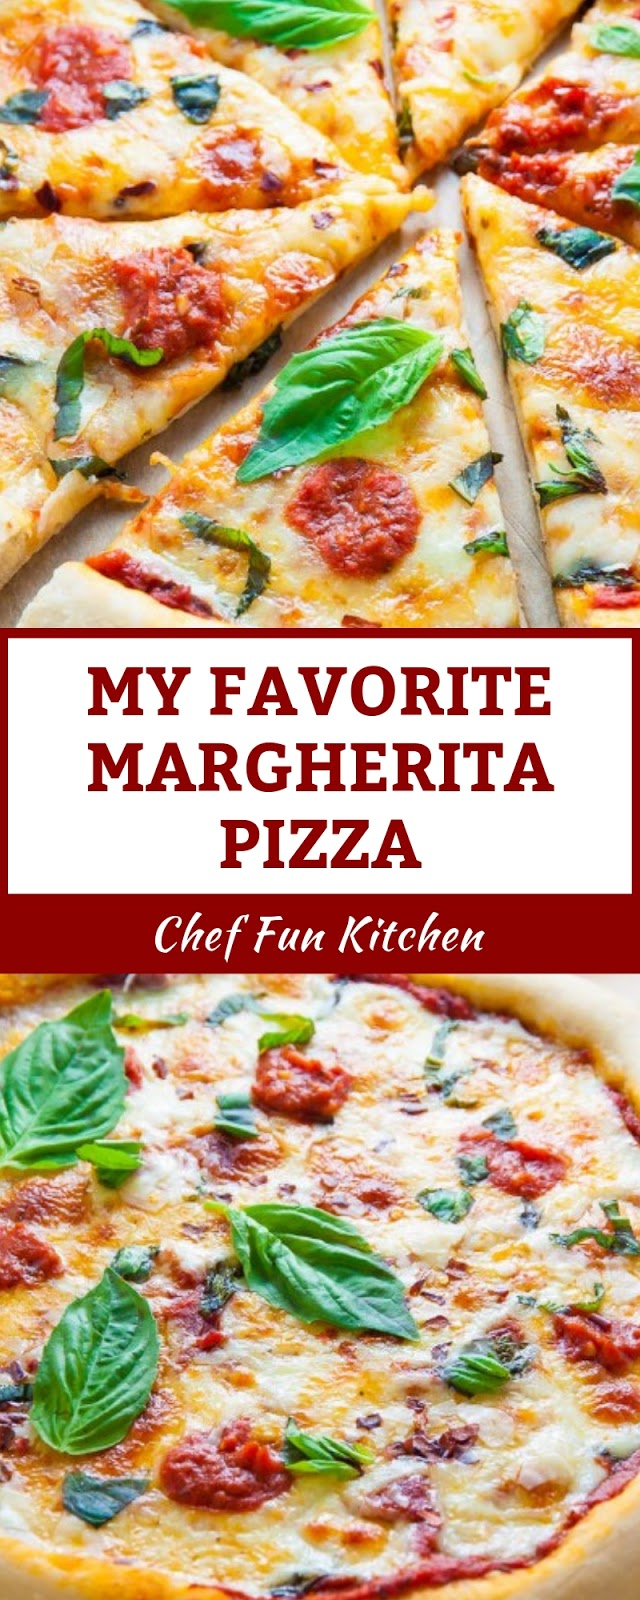 MY FAVORITE MARGHERITA PIZZA